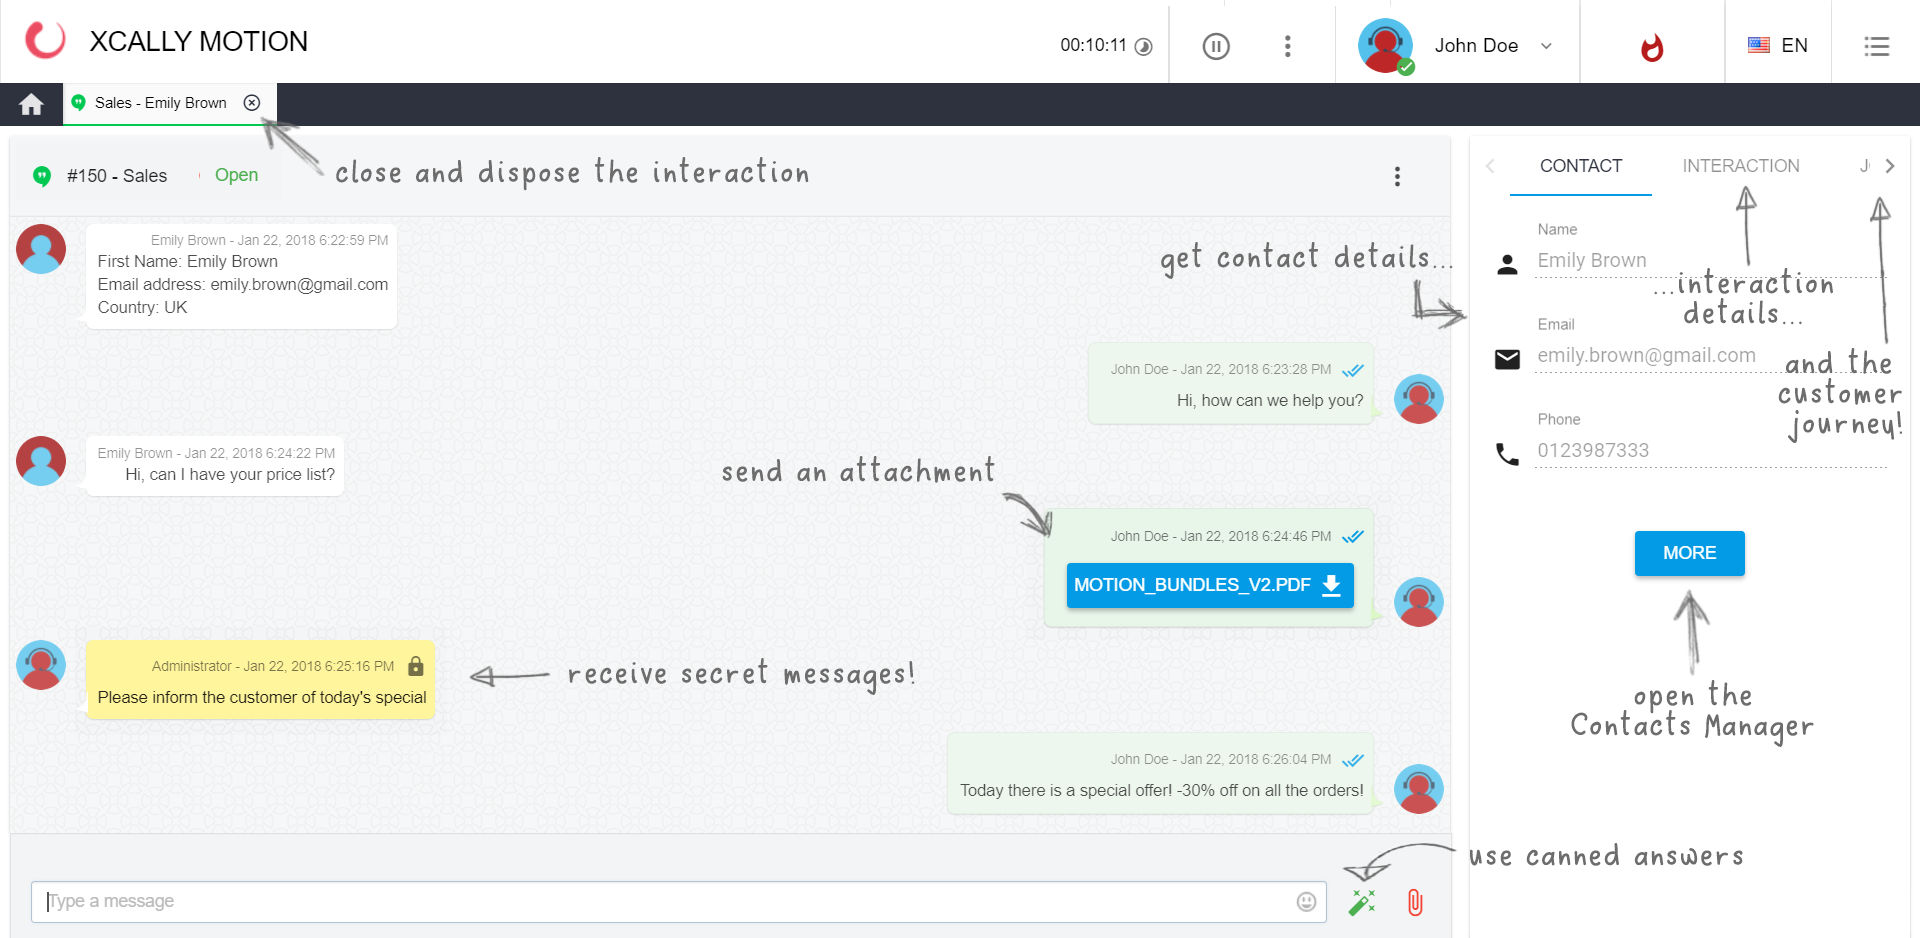 XCALLY screenshot: In the interaction view, agents can receive and send messages, attachments, canned answers, and can immediately see also contact info, interaction details and the customer journey